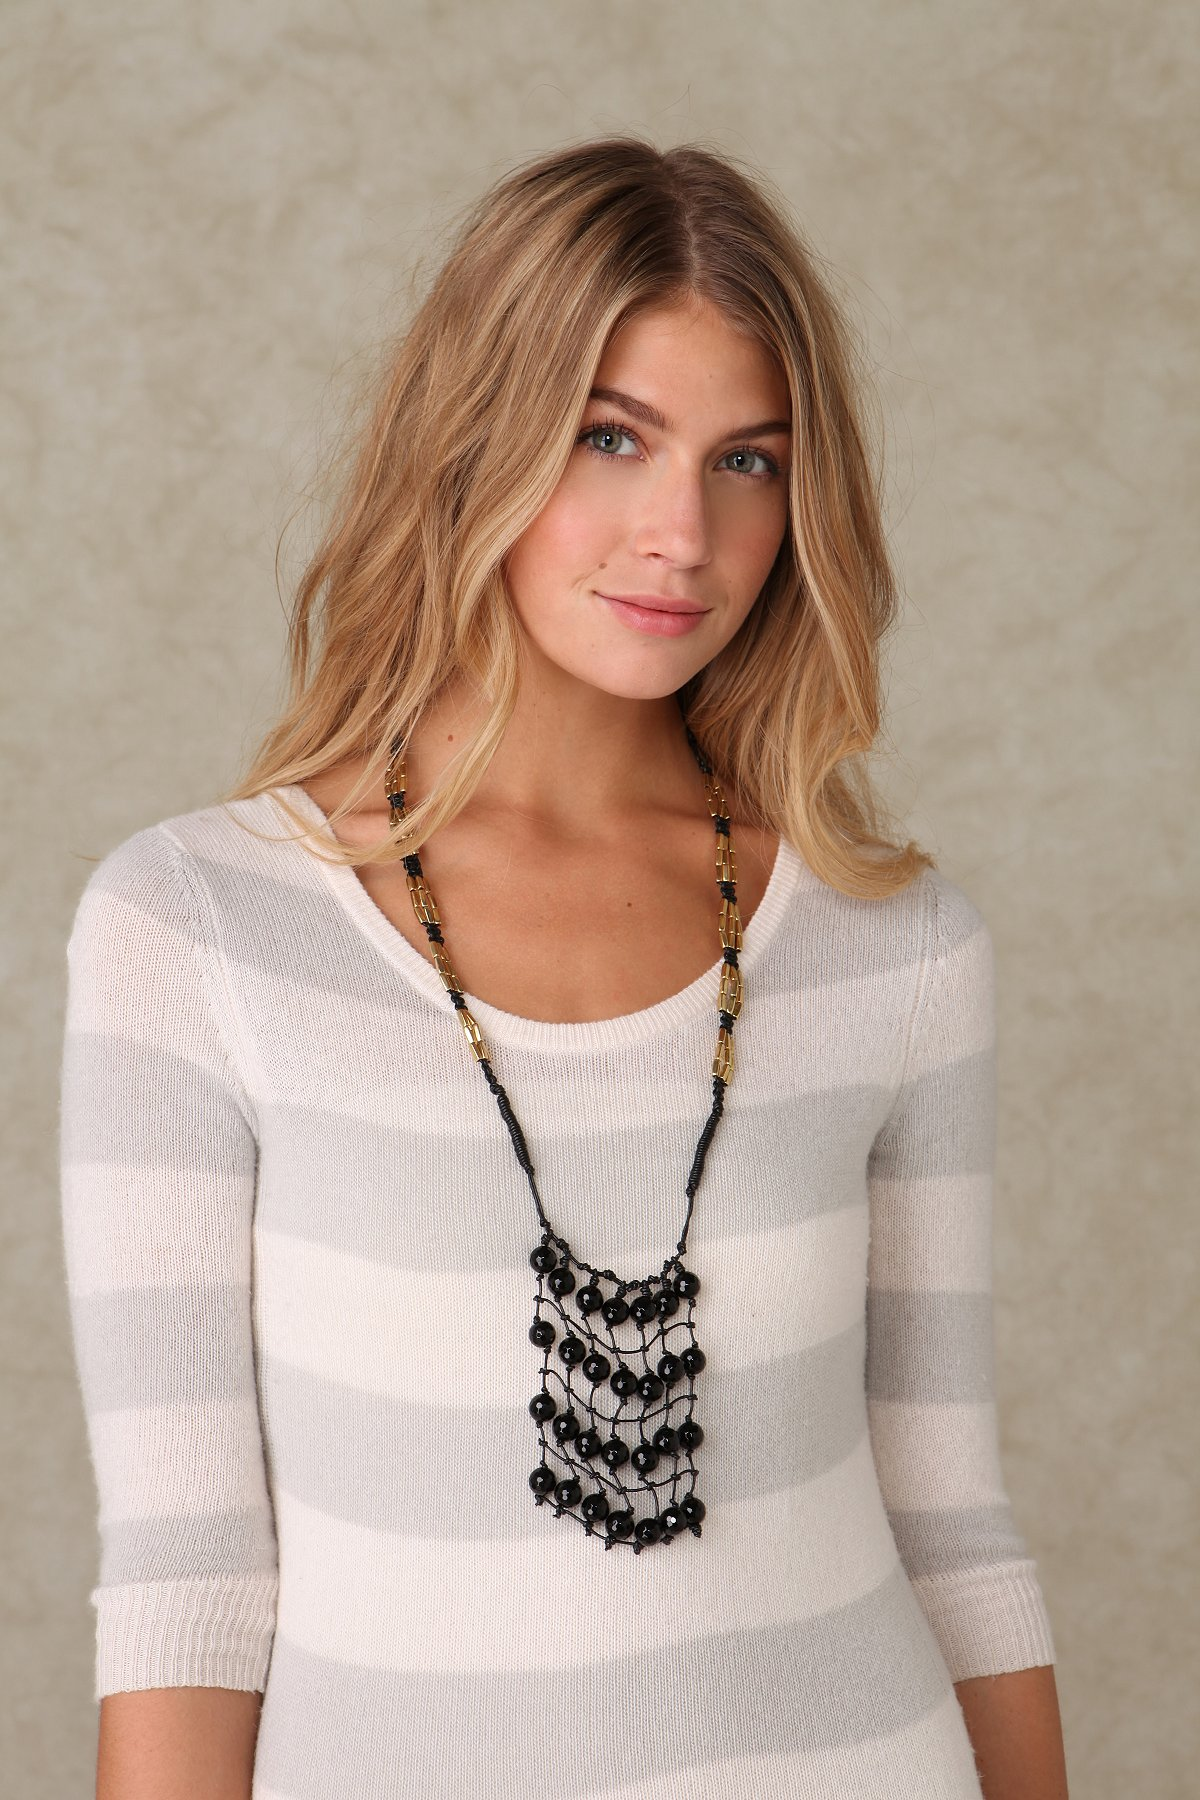 Hanging Net Necklace